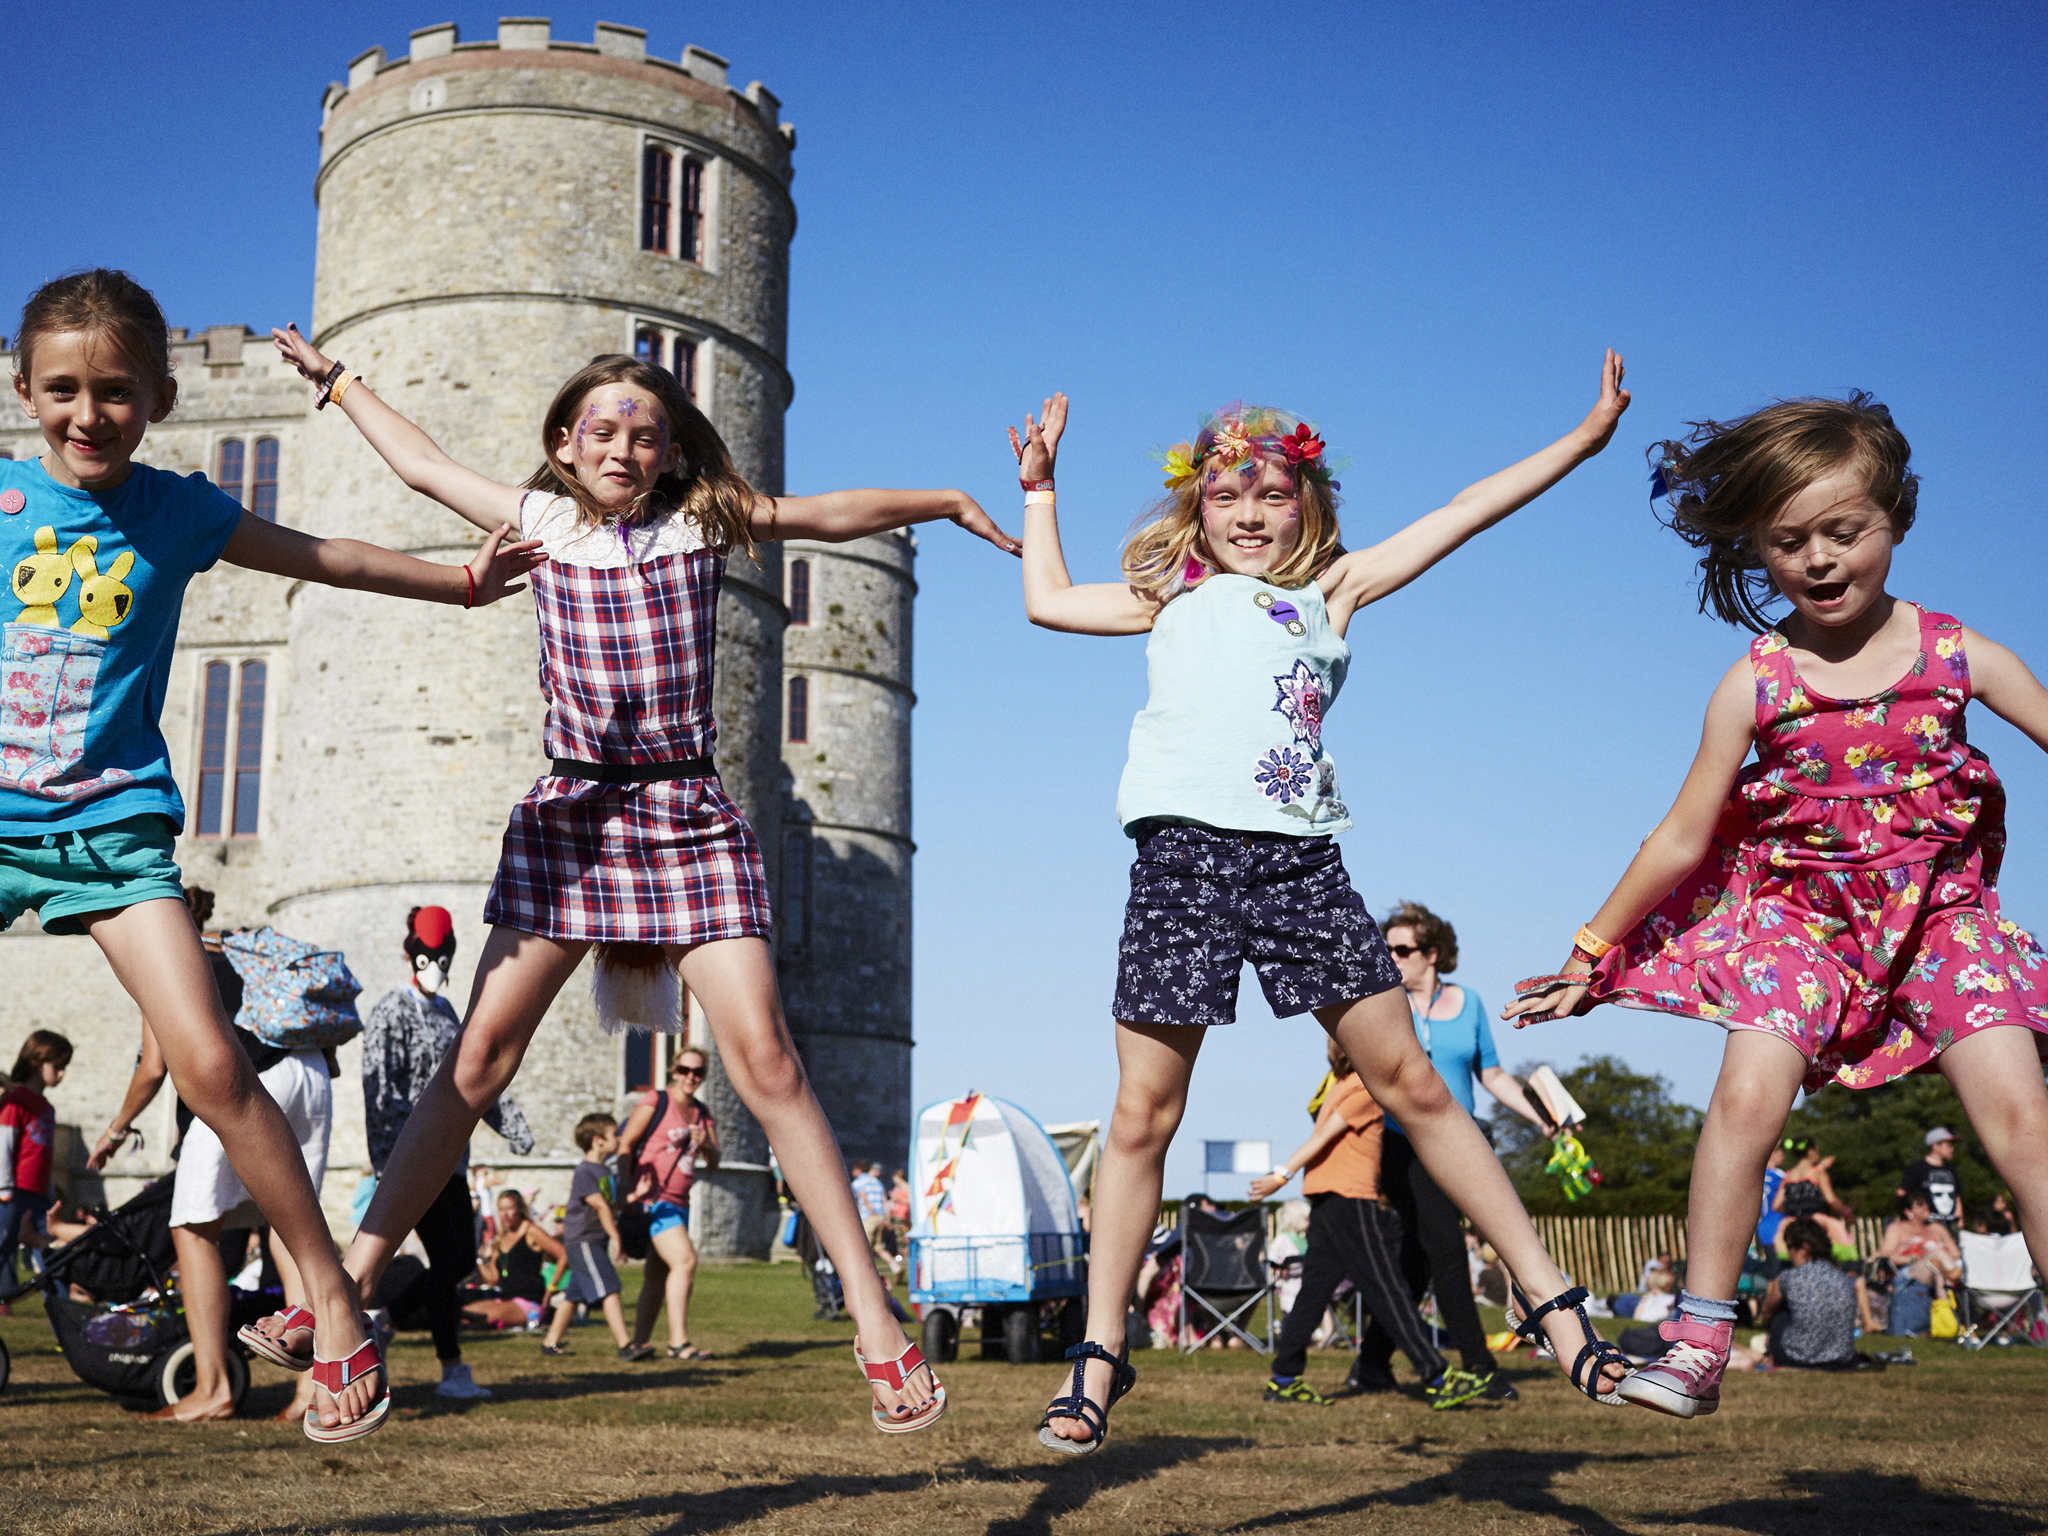 Win one of three family weekend tickets to Camp Bestival 2015